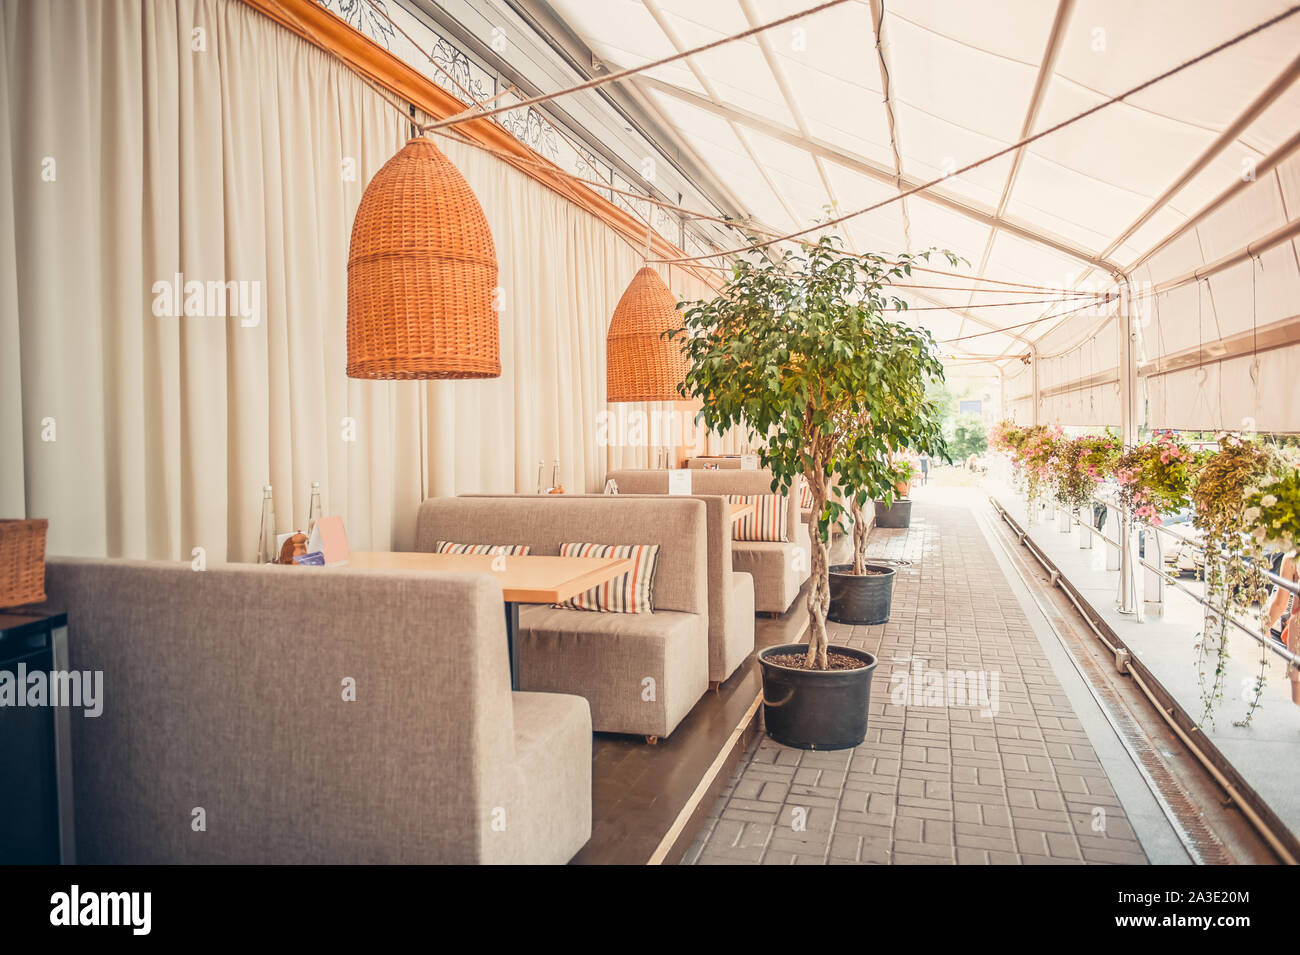 Outdoor Large Restaurant S Terrace Patio In Light Natural Eco Style Selective Focus Copy Space Stock Photo Alamy